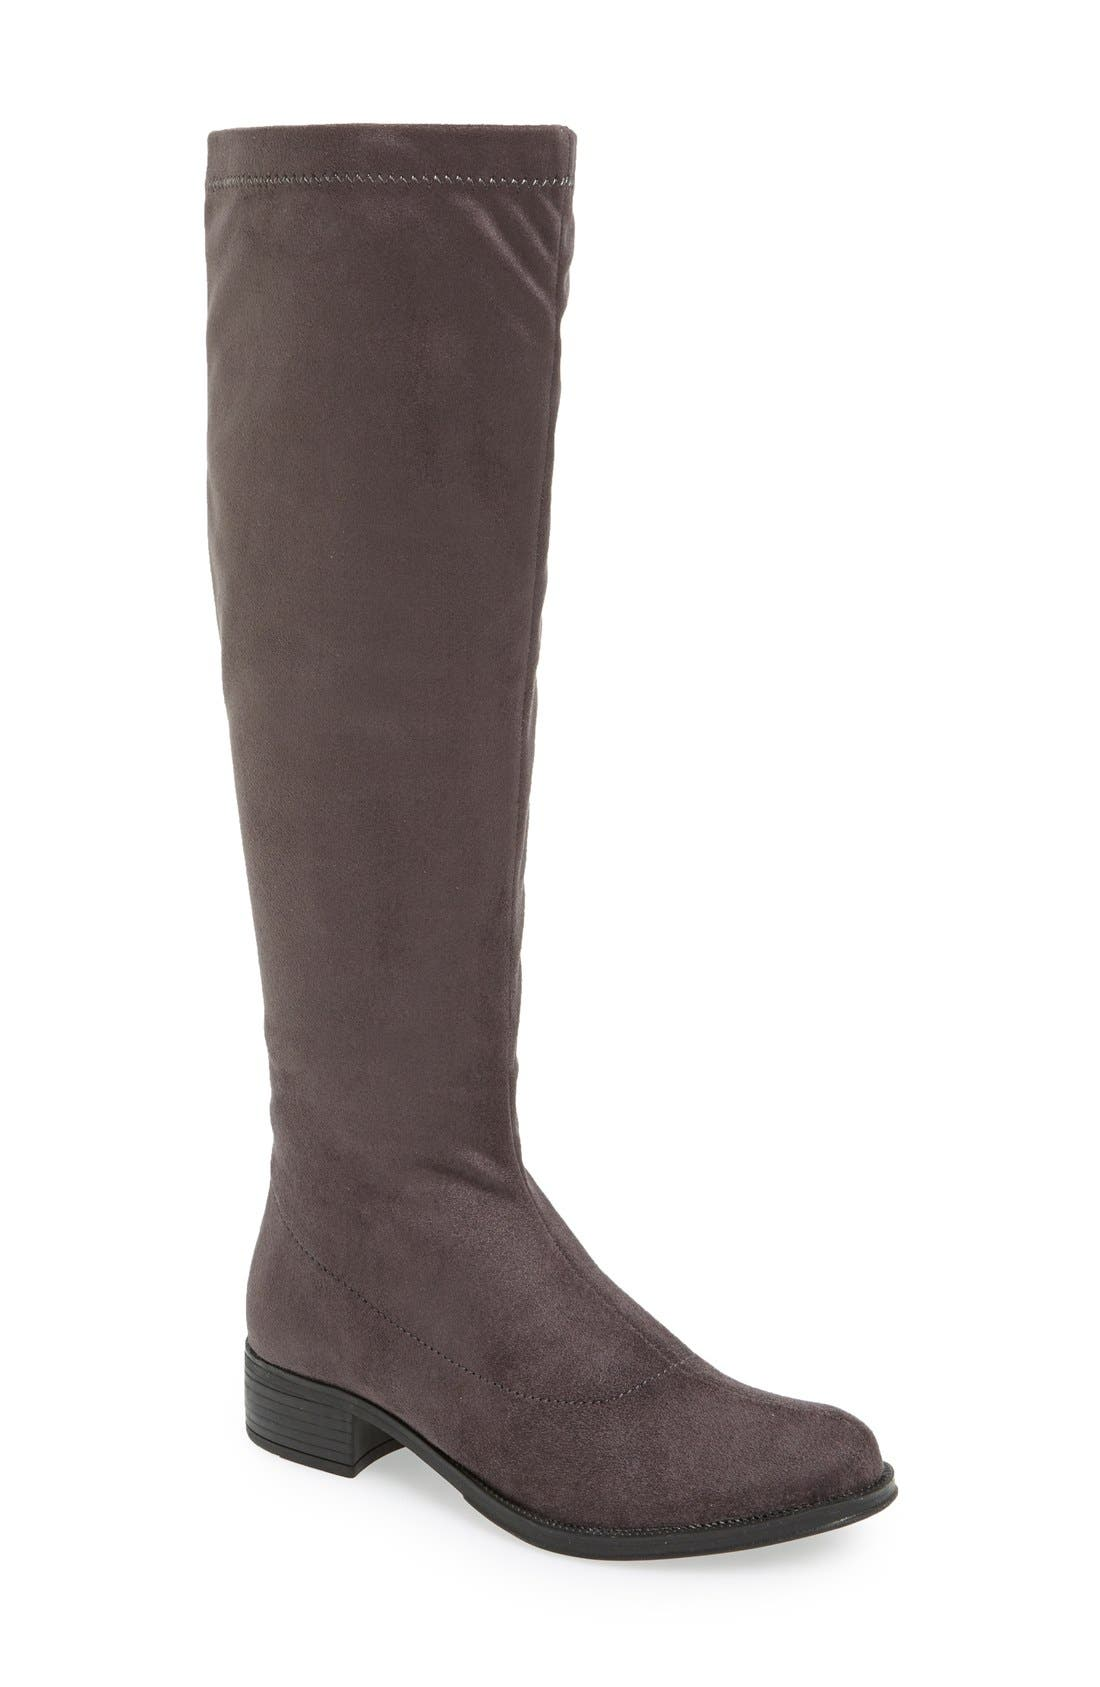 Main Image - Bussola 'Sofia' Tall Boot (Women)